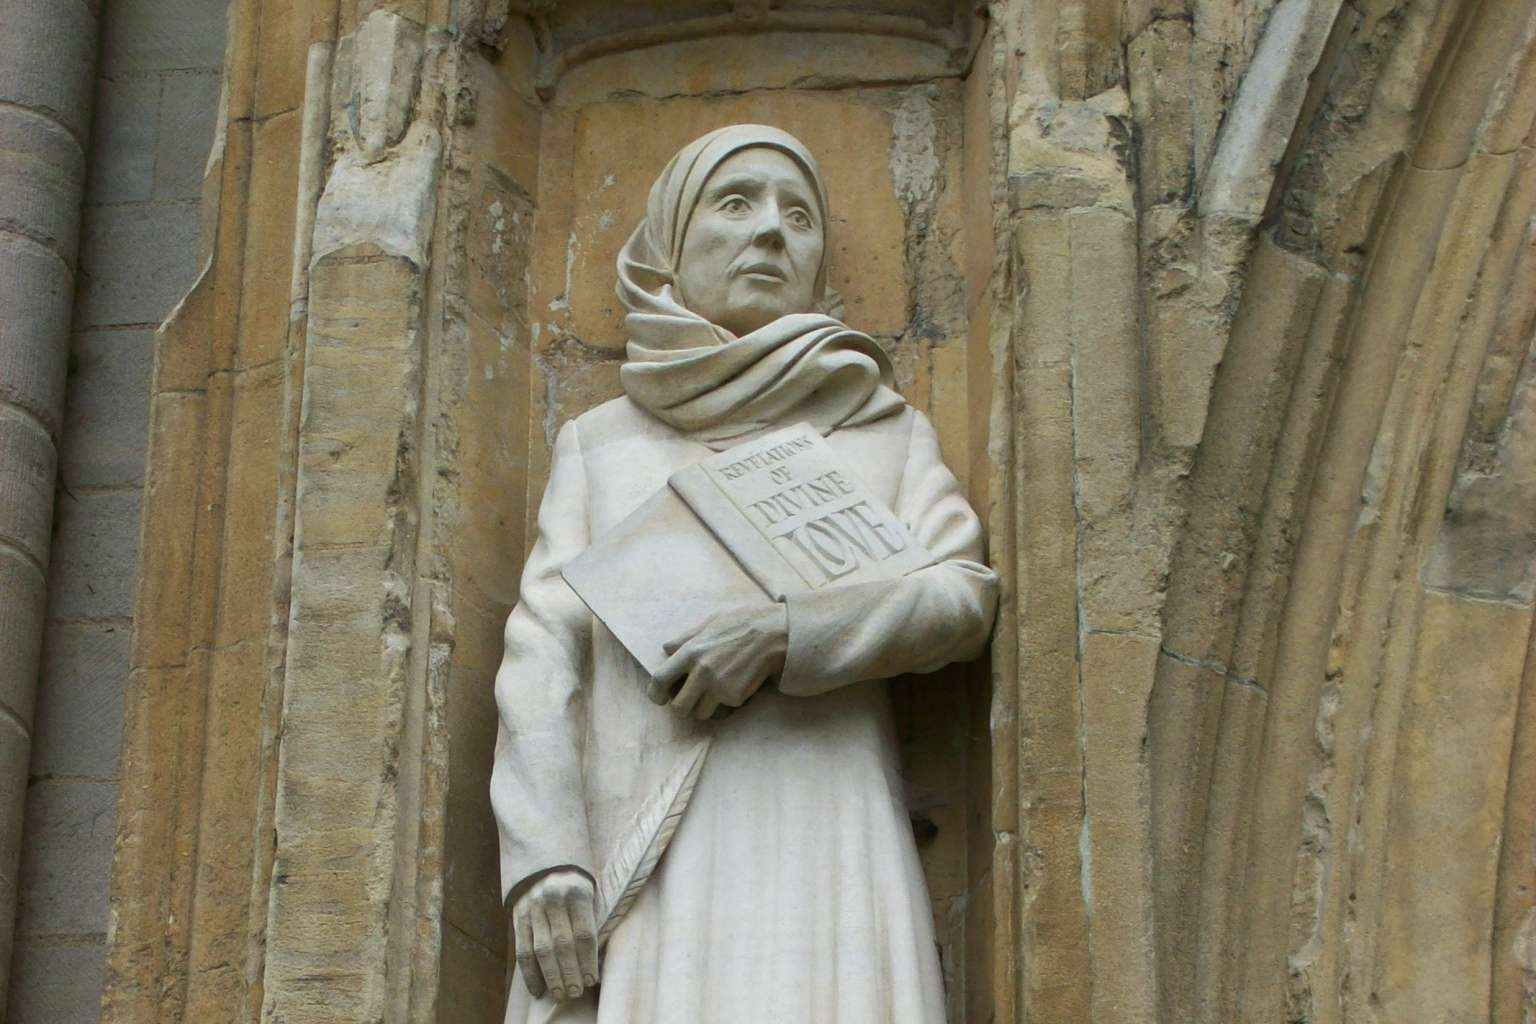 Statue of Julian of Norwich by David Holgate, west front, Norwich Cathedral